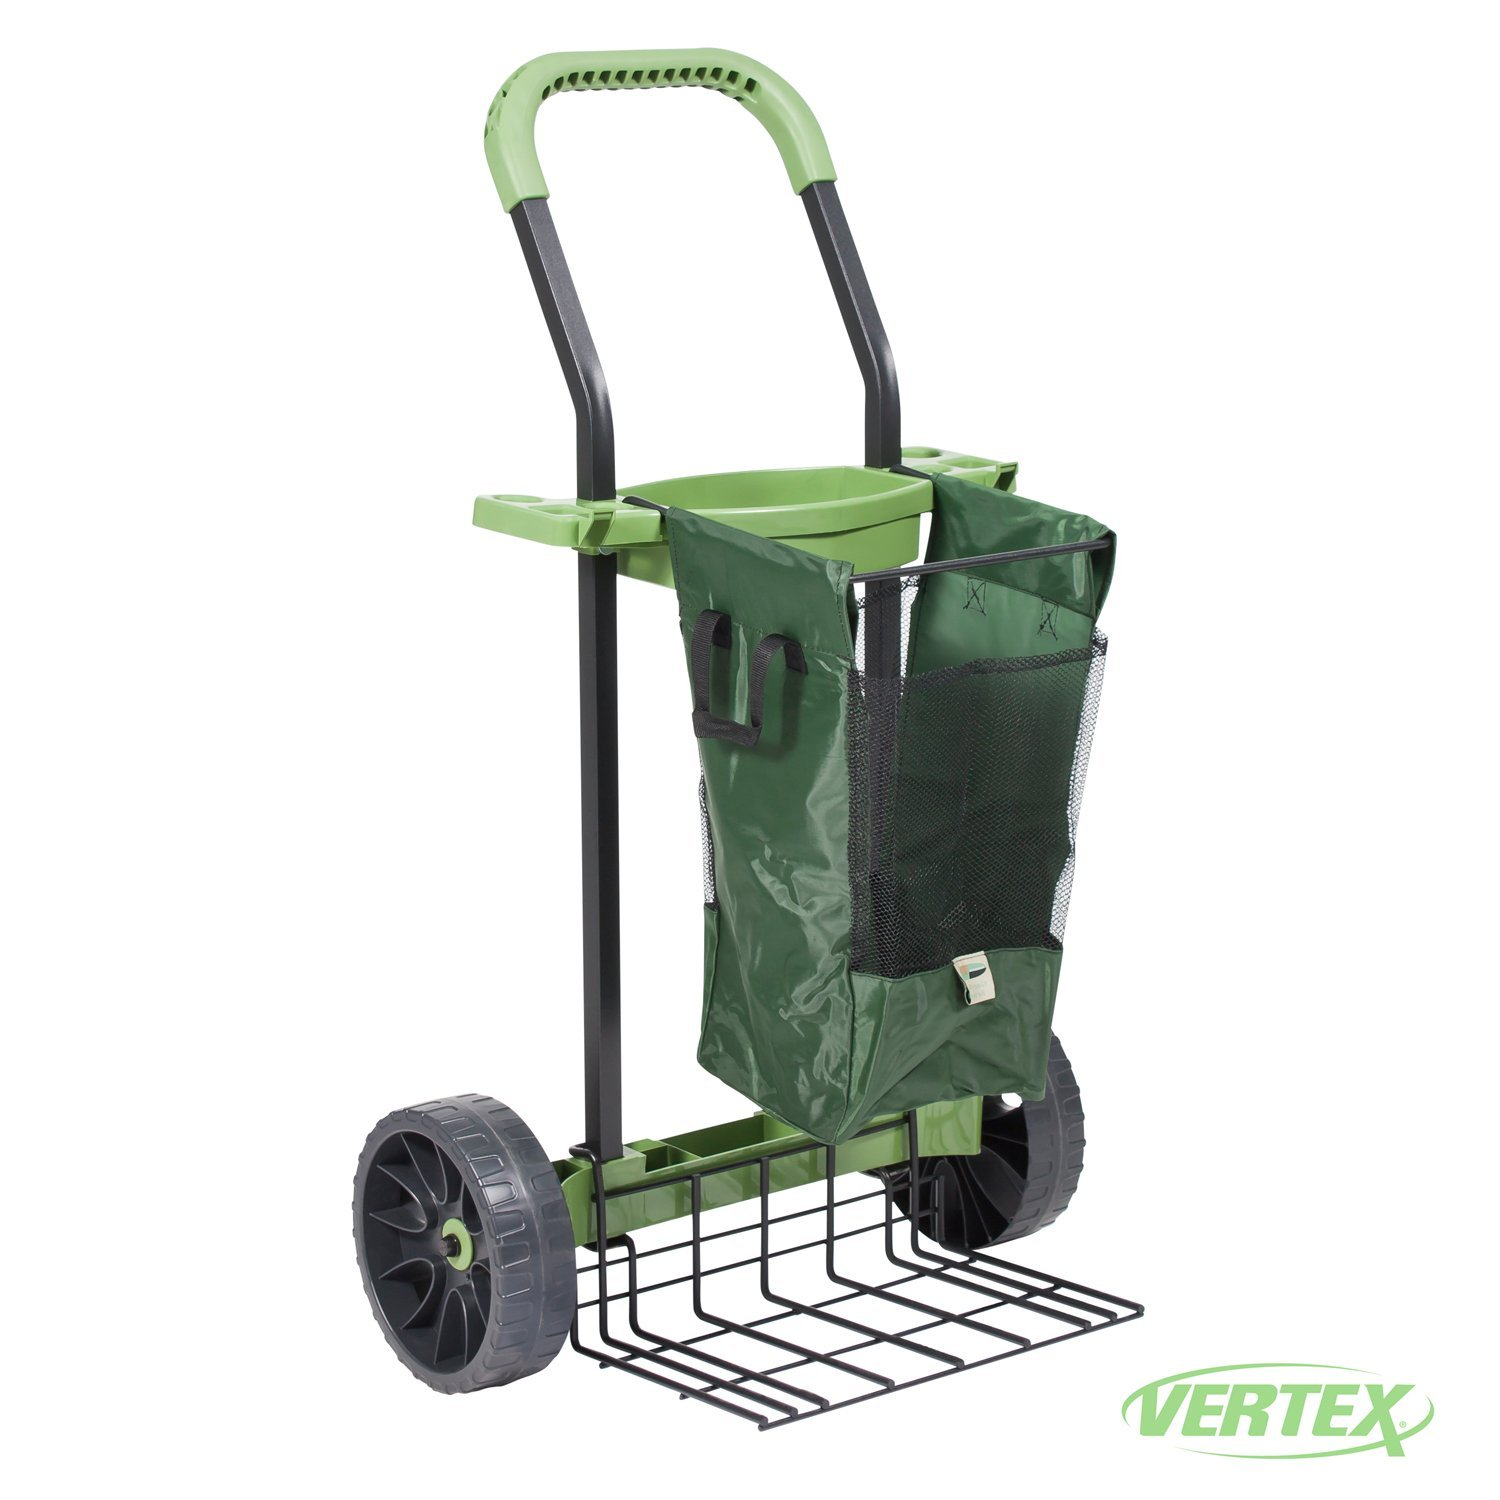 Super-Duty Yard & Garden Project Cart By Vertex With Never Flat Tires & 100 Lb. Capacity Lift Plate - Made In USA - Model SD380